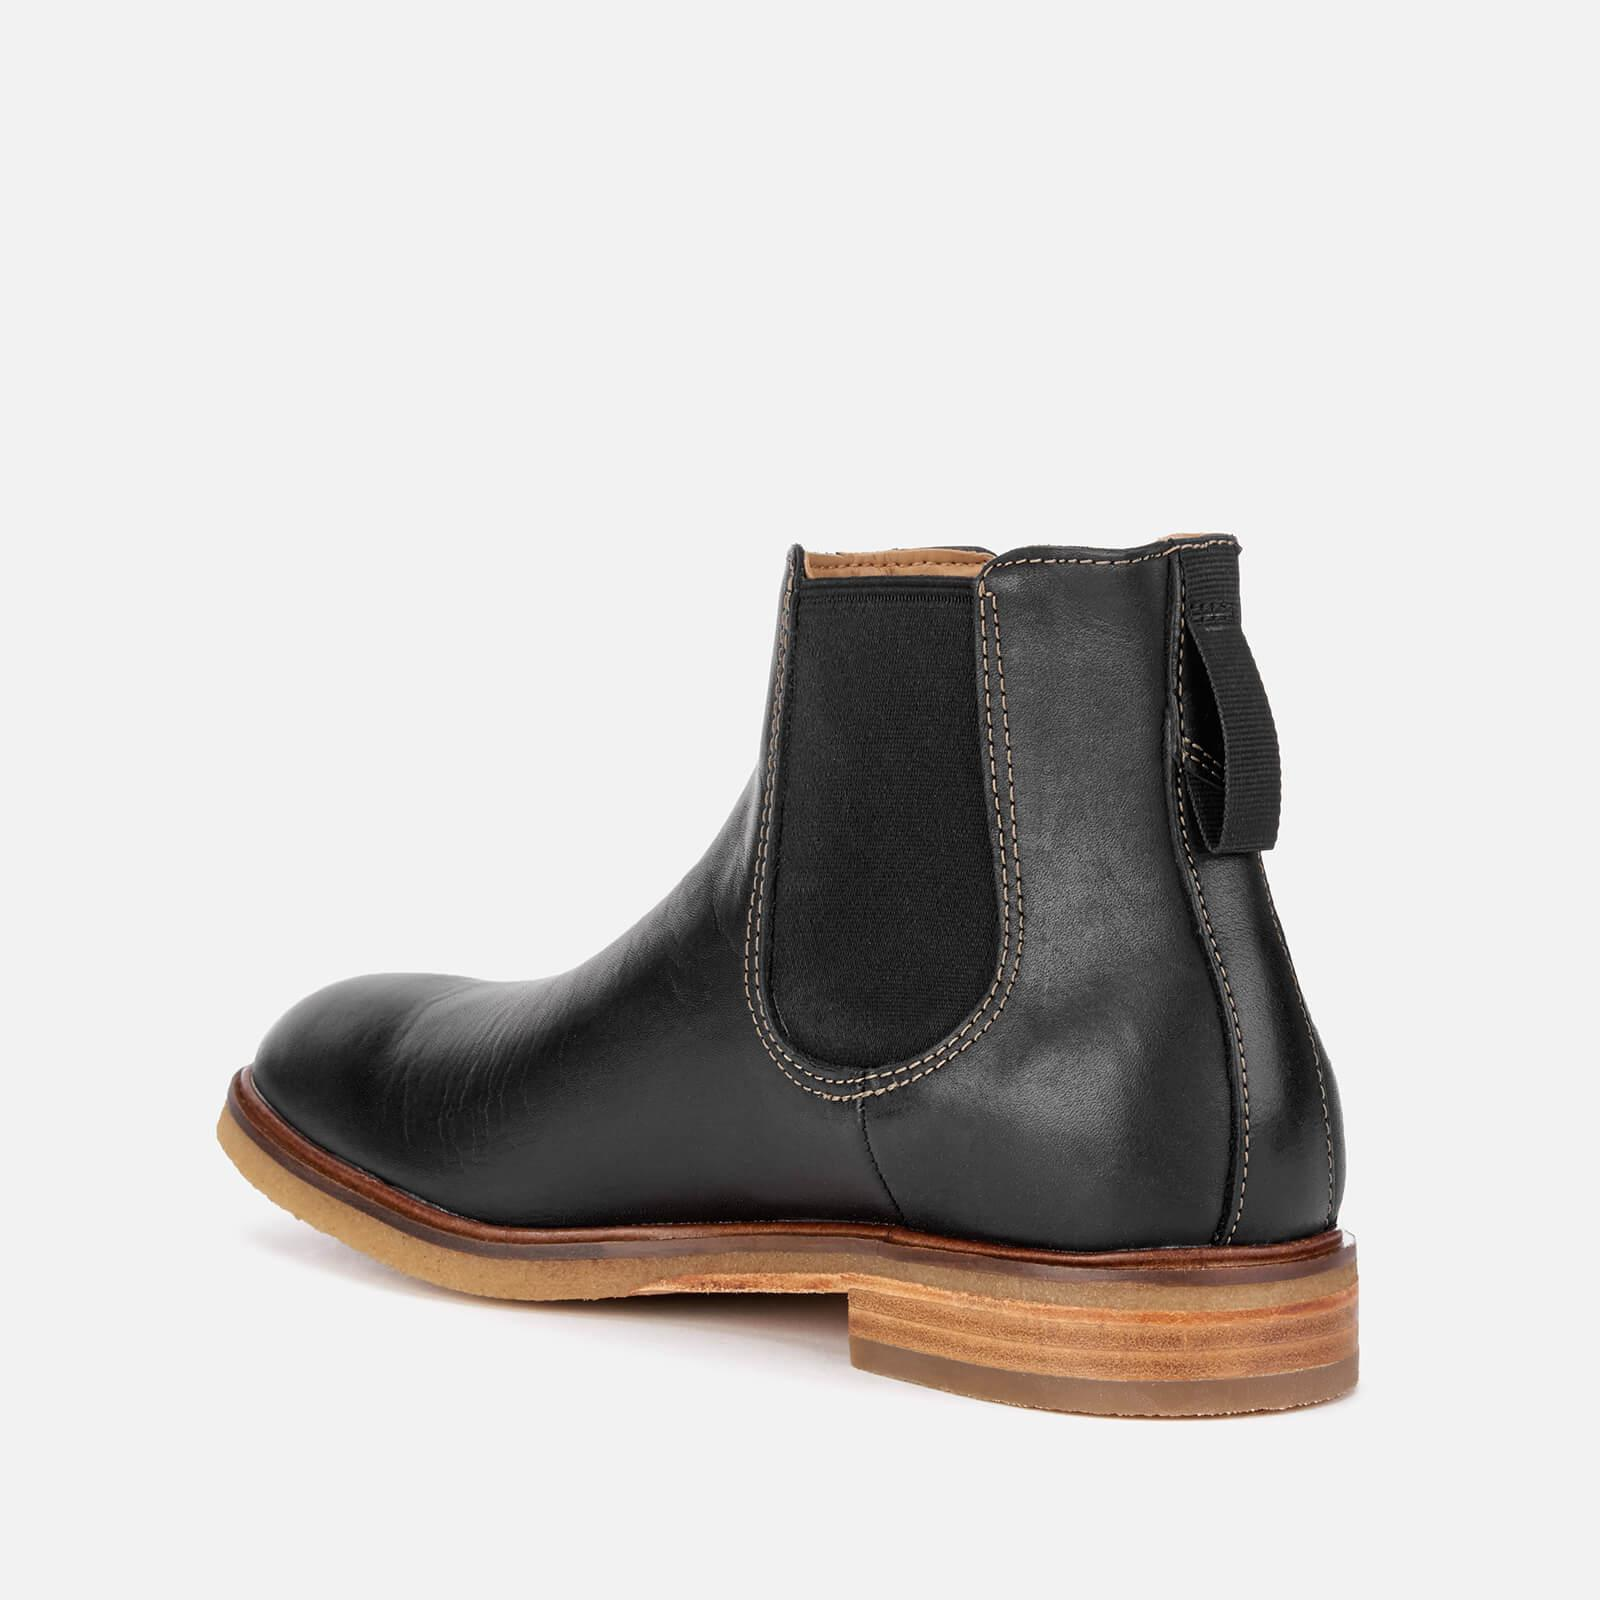 6a950a36c02735 Clarks - Black Clarkdale Gobi Leather Chelsea Boots for Men - Lyst. View  fullscreen